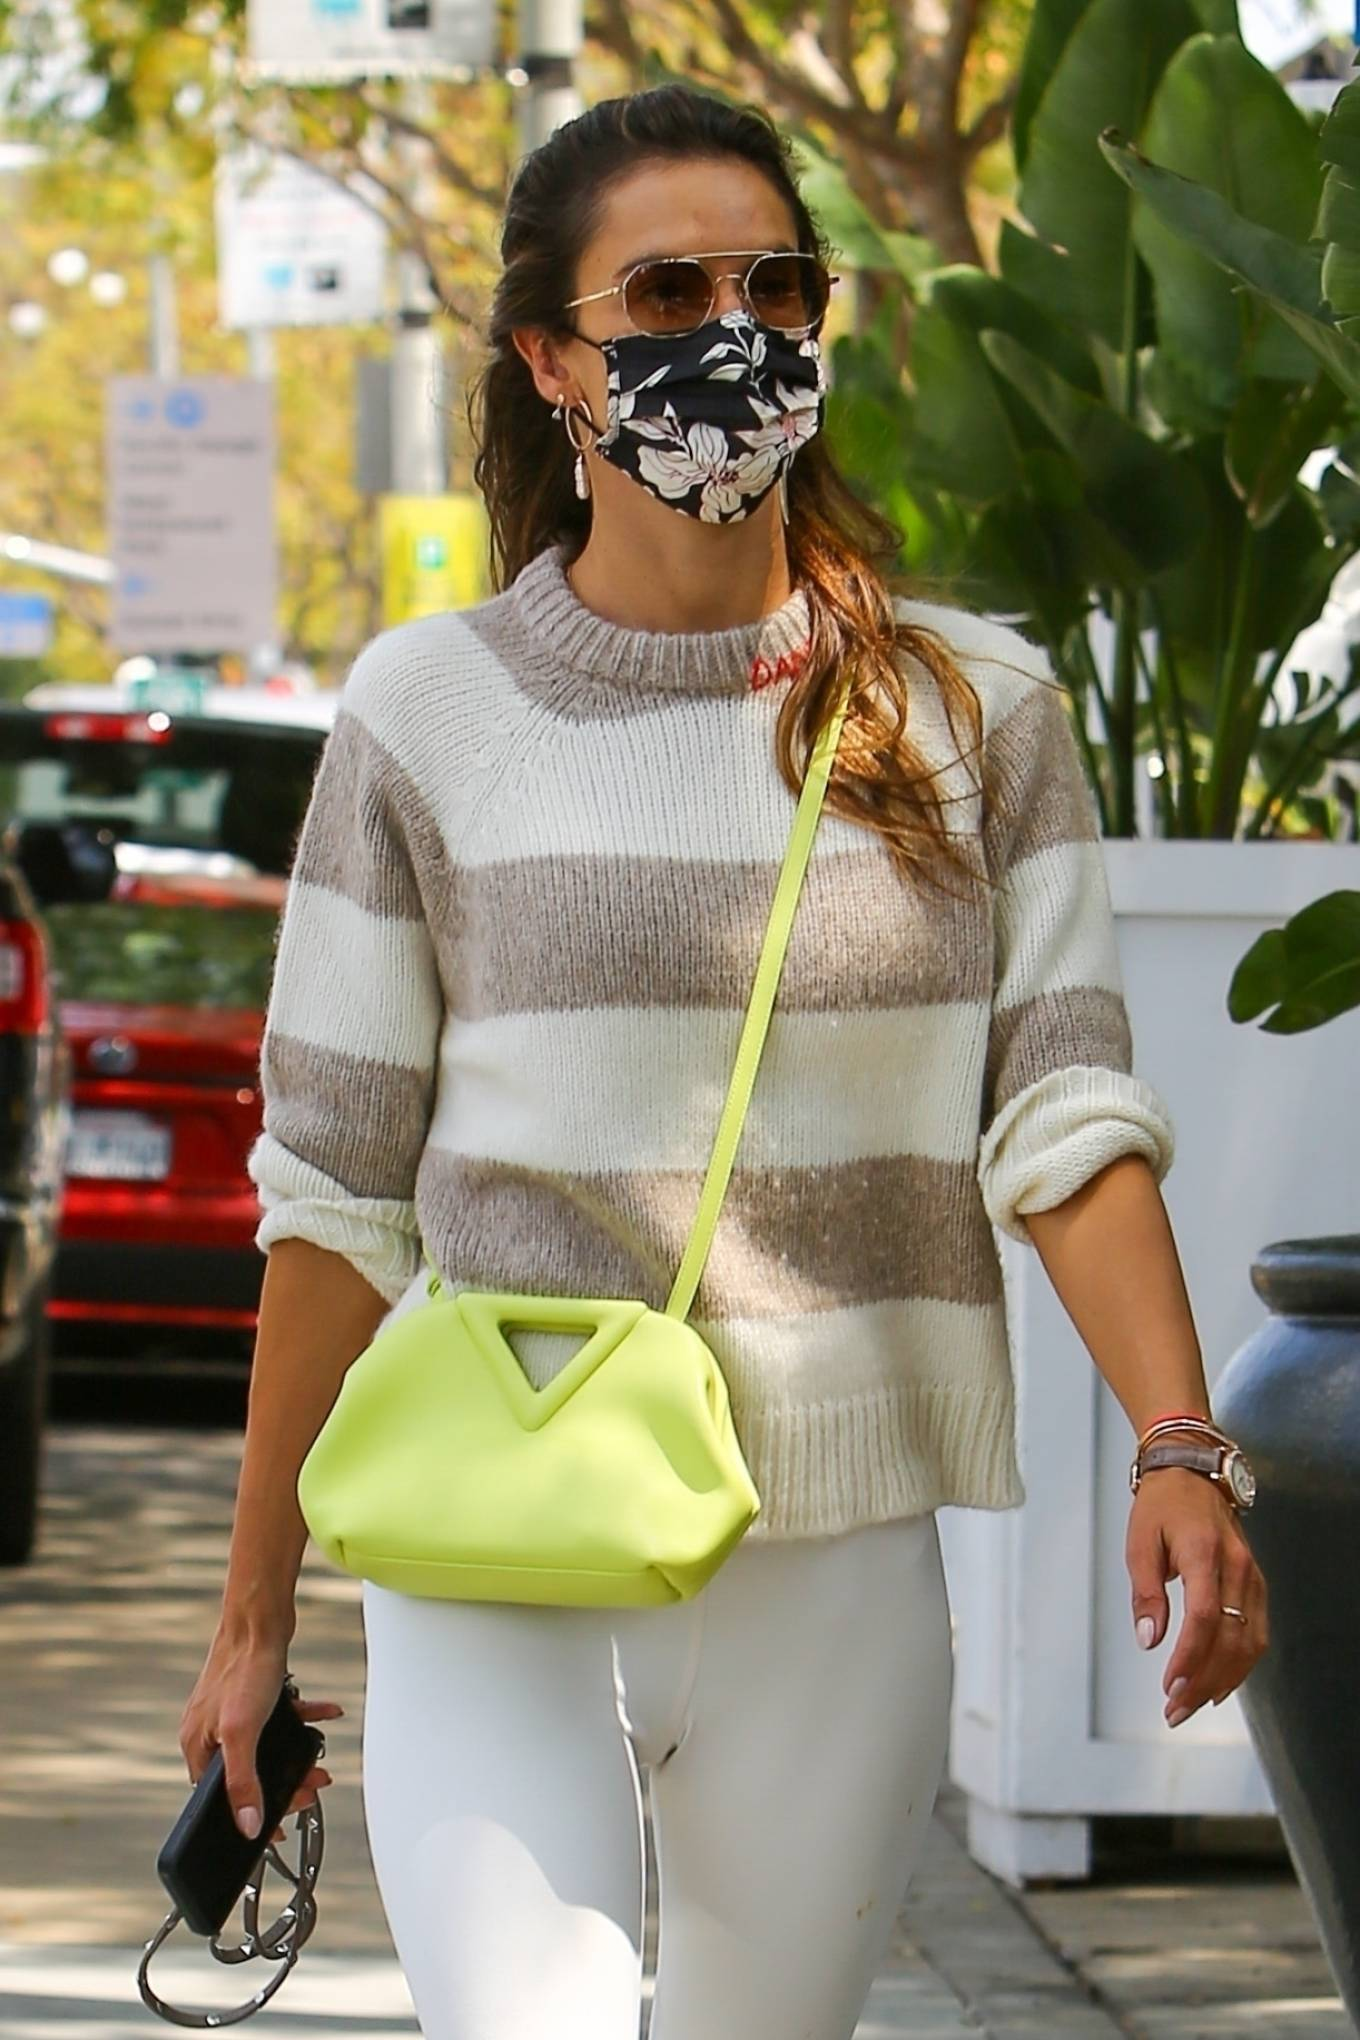 Alessandra Ambrosio donning round white leather lace-up sneakers with flat heel